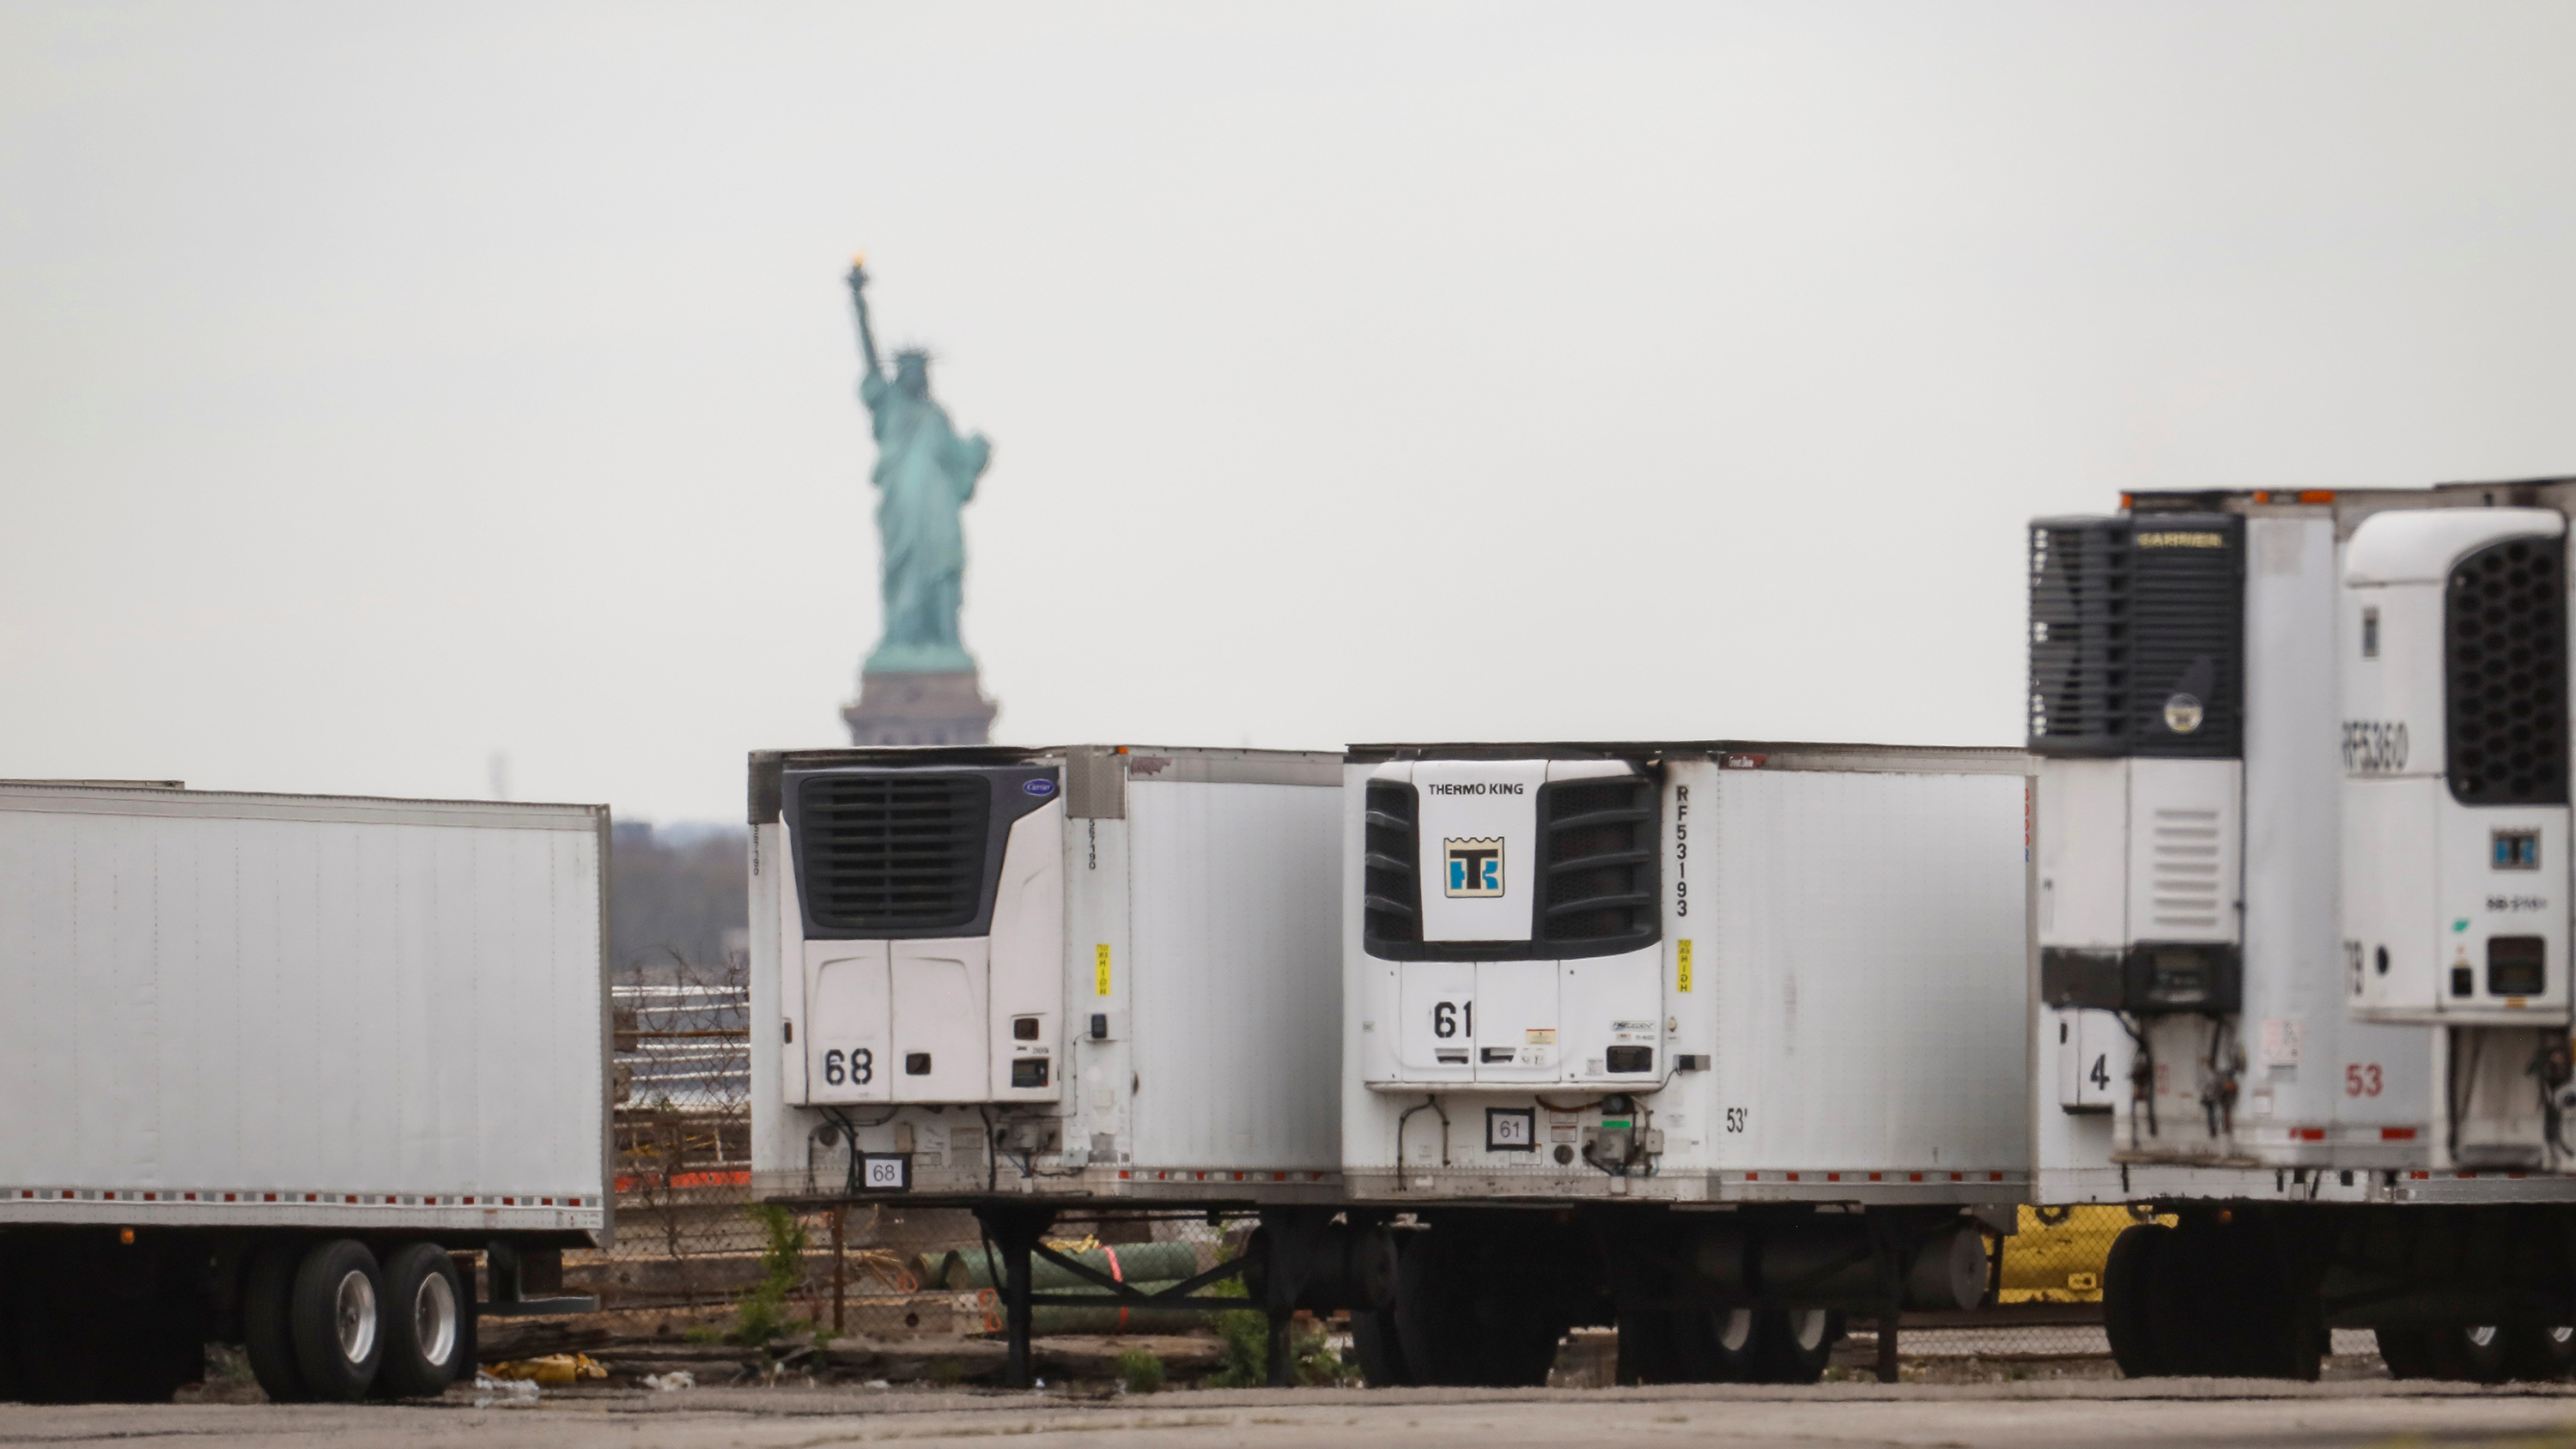 The photo shows several large 18-wheeler trucks parked with the Statue of Liberty in the background.